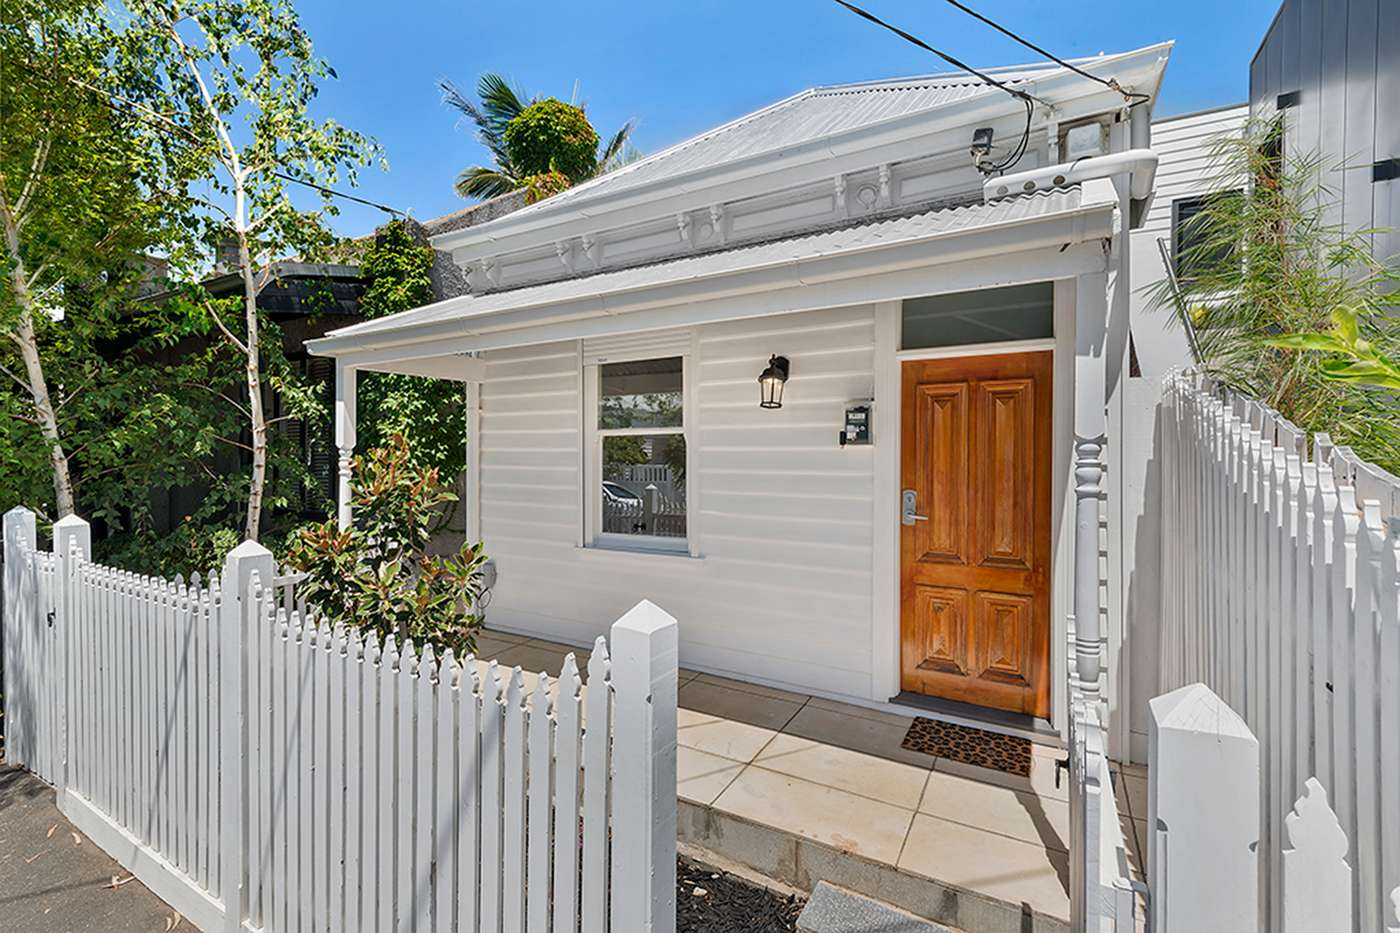 Main view of Homely house listing, 66 Earl Street East, Prahran, VIC 3181